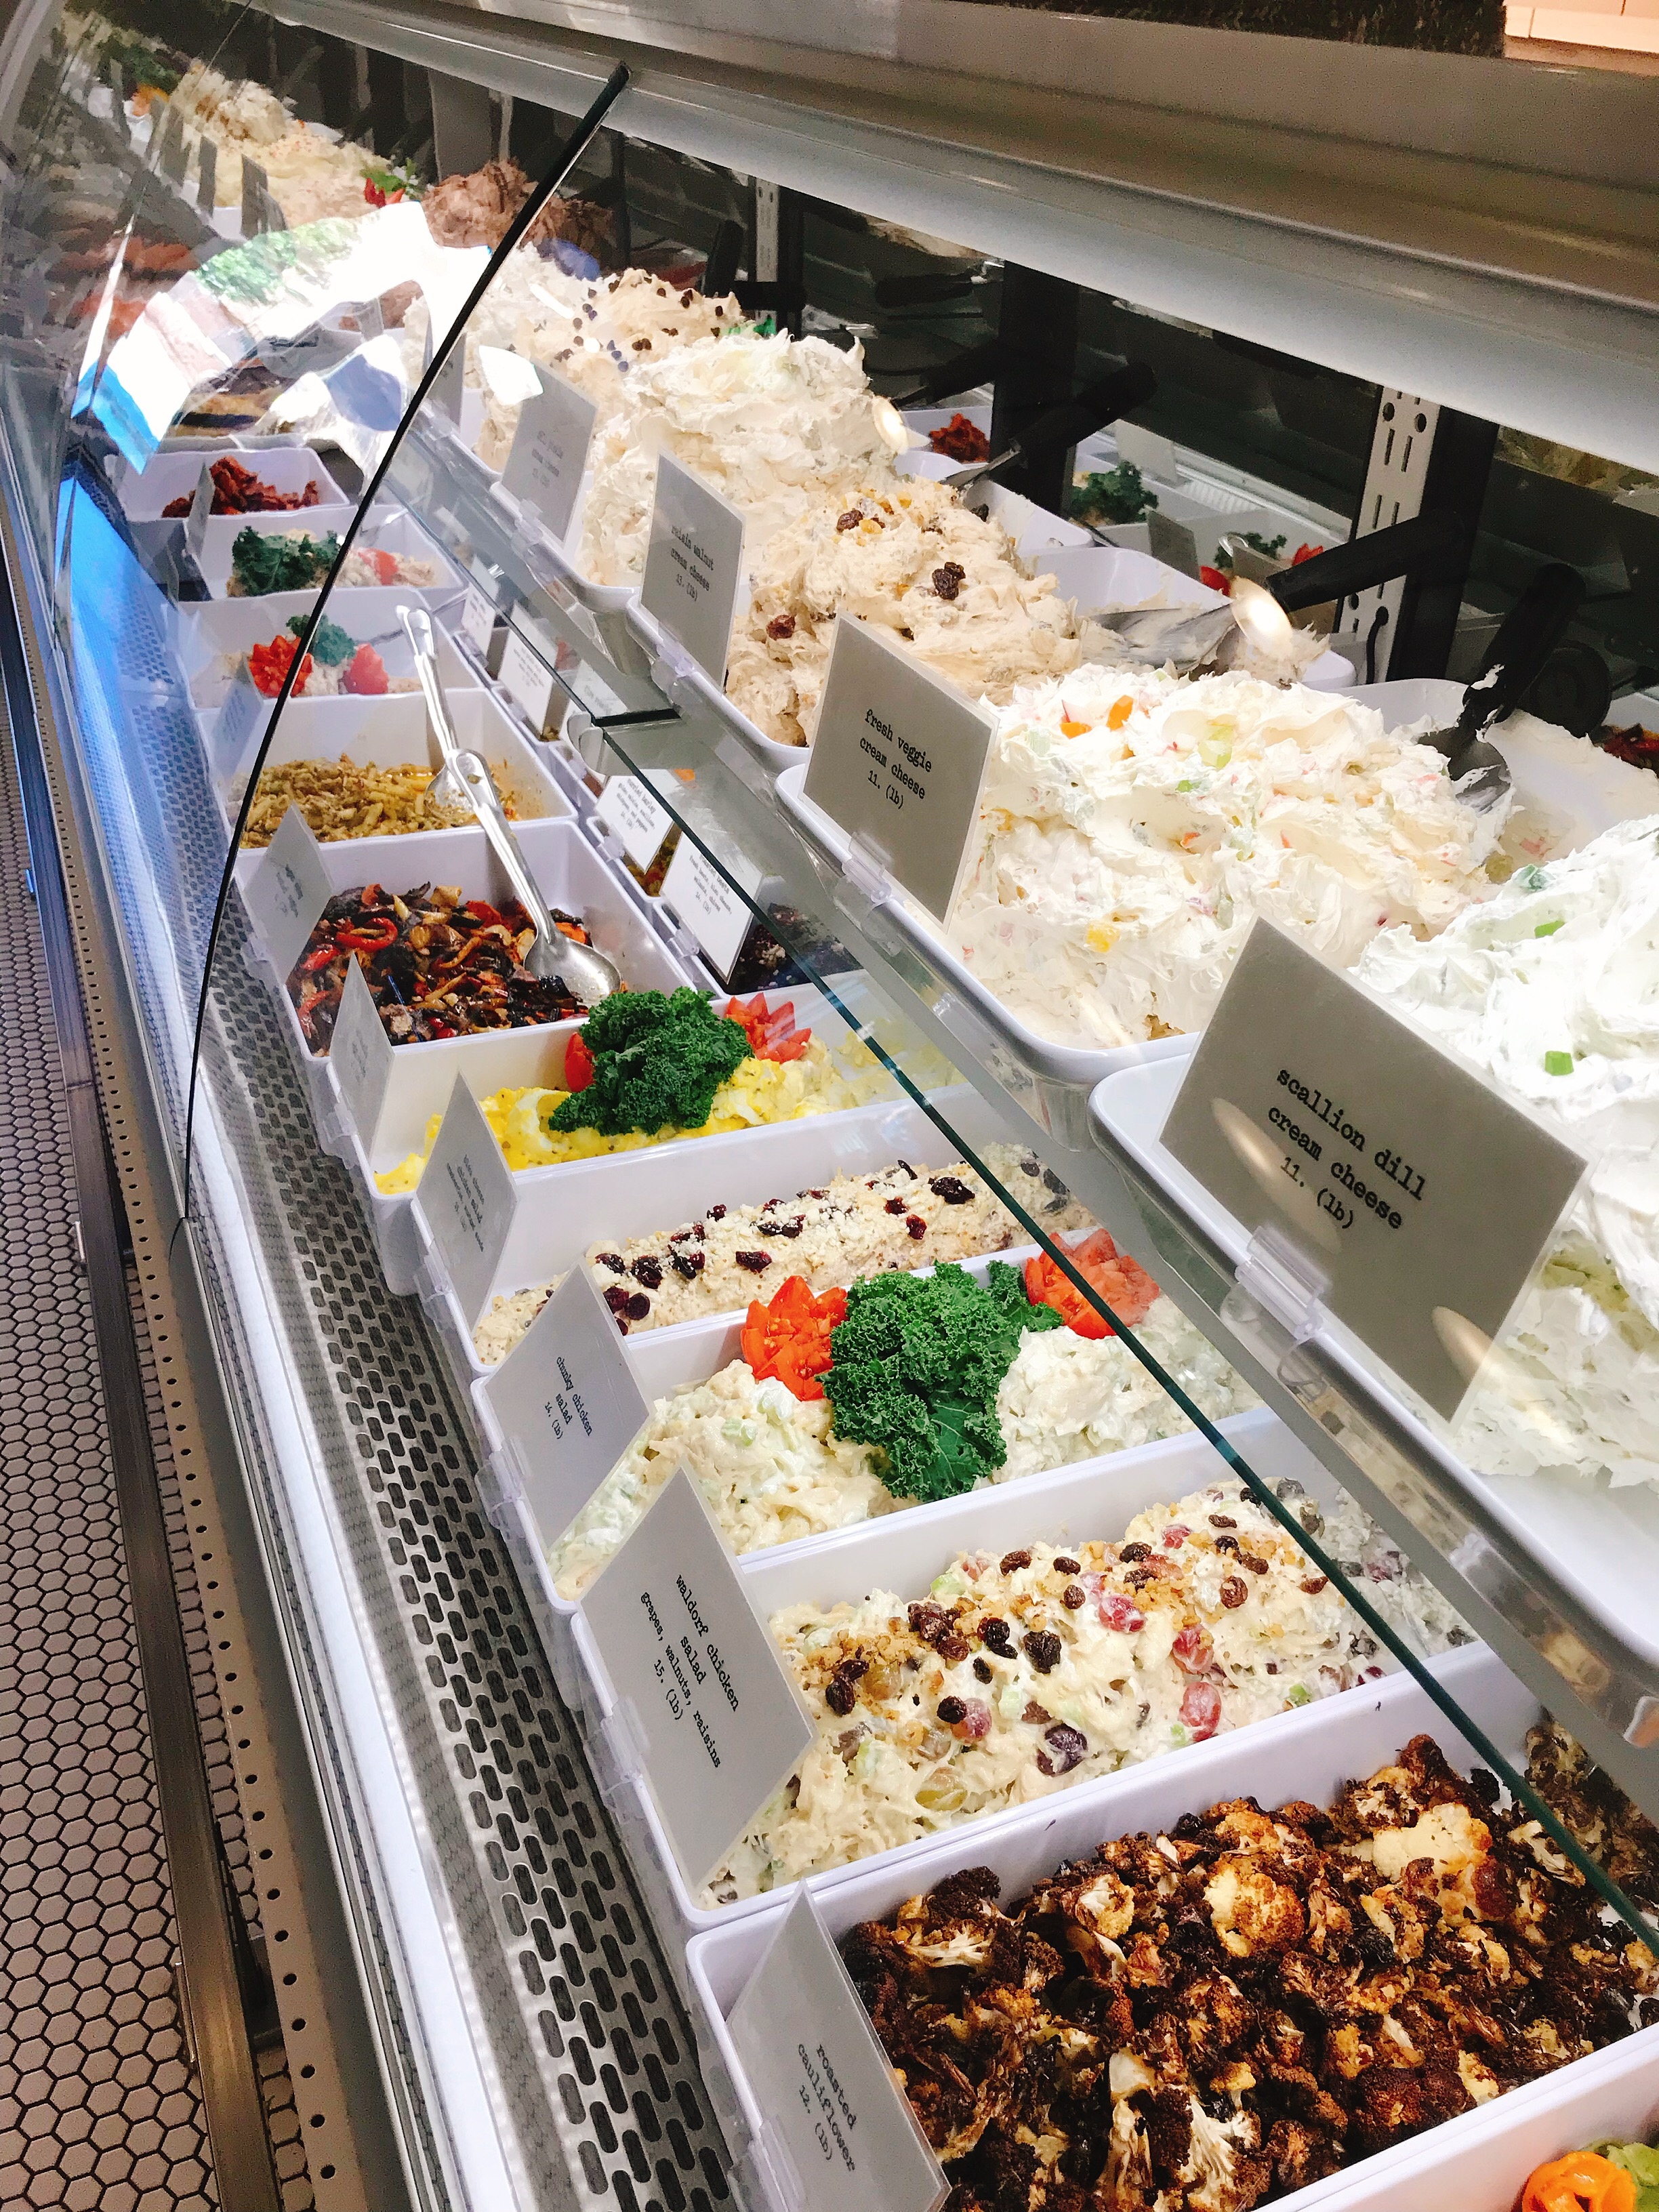 Feel free to sample anything in the case! Those cream cheese flavors are on point!